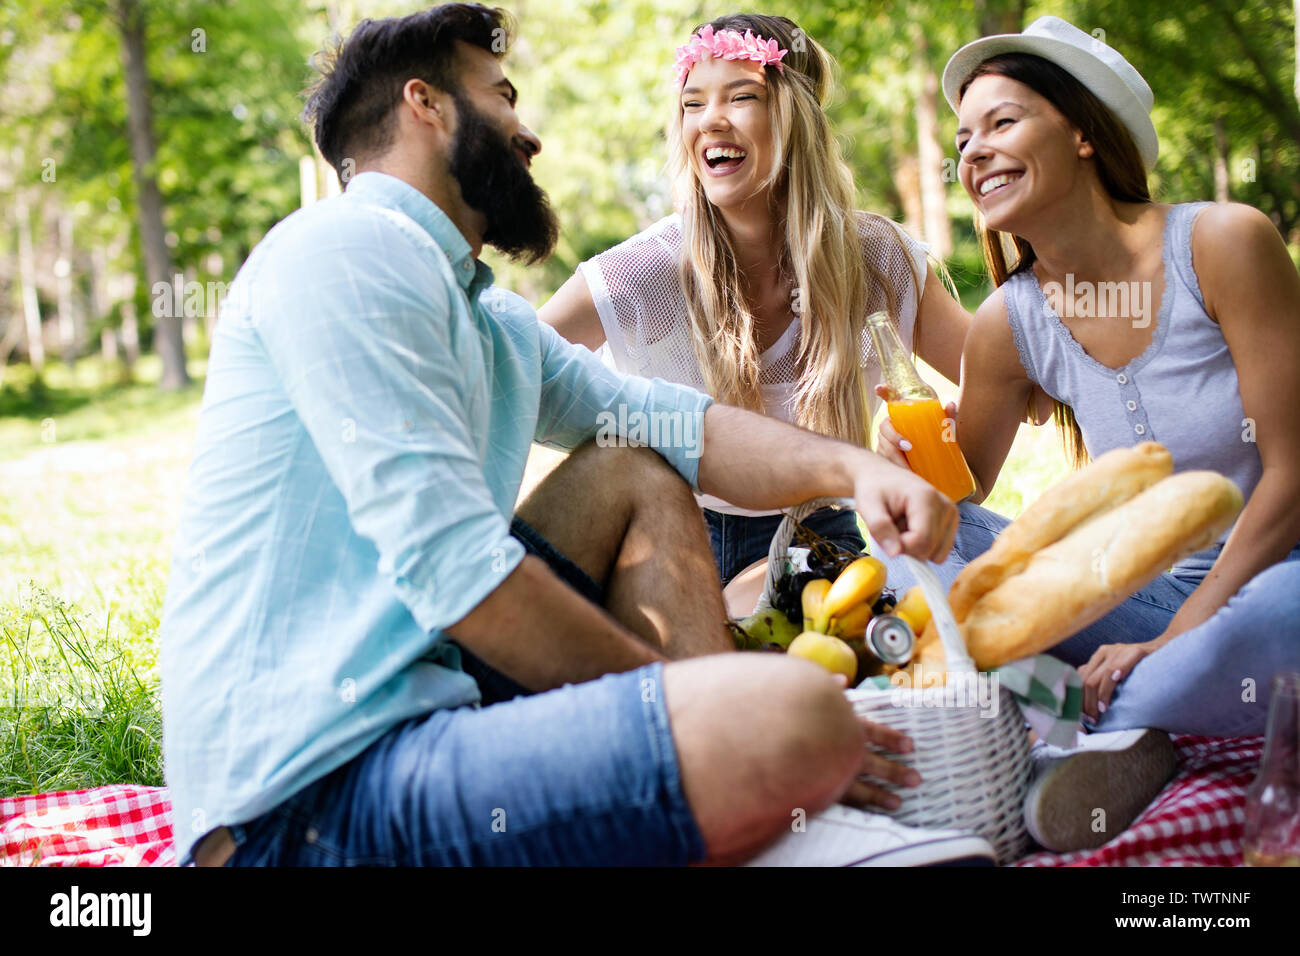 Summer, vacation, music and recreation time concept. Group of friends have picnic outdoor. - Stock Image